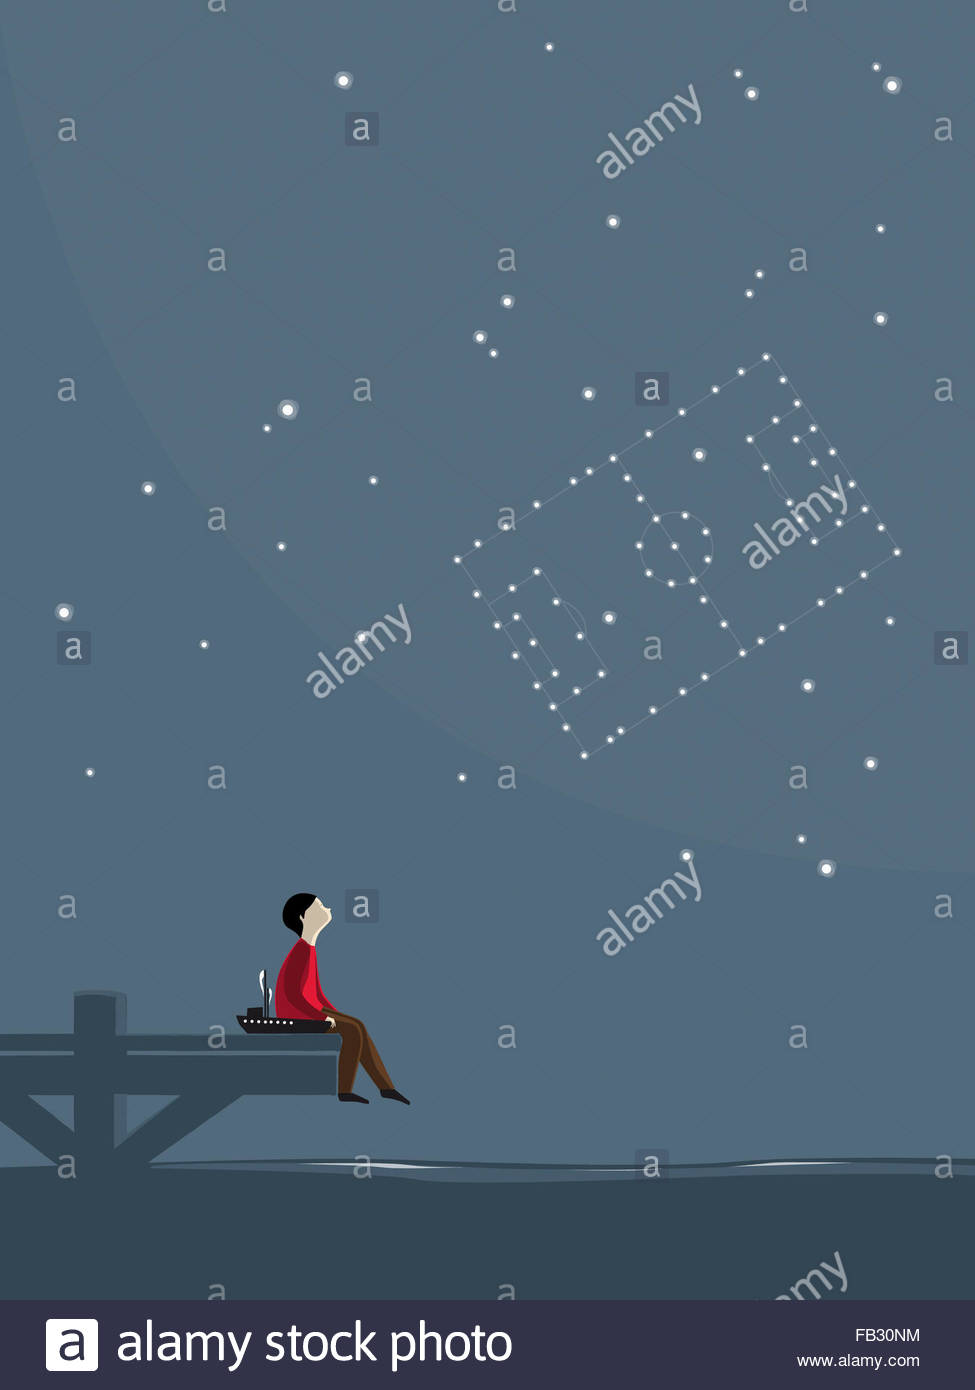 Watching Stars Stock Photos & Watching Stars Stock Images